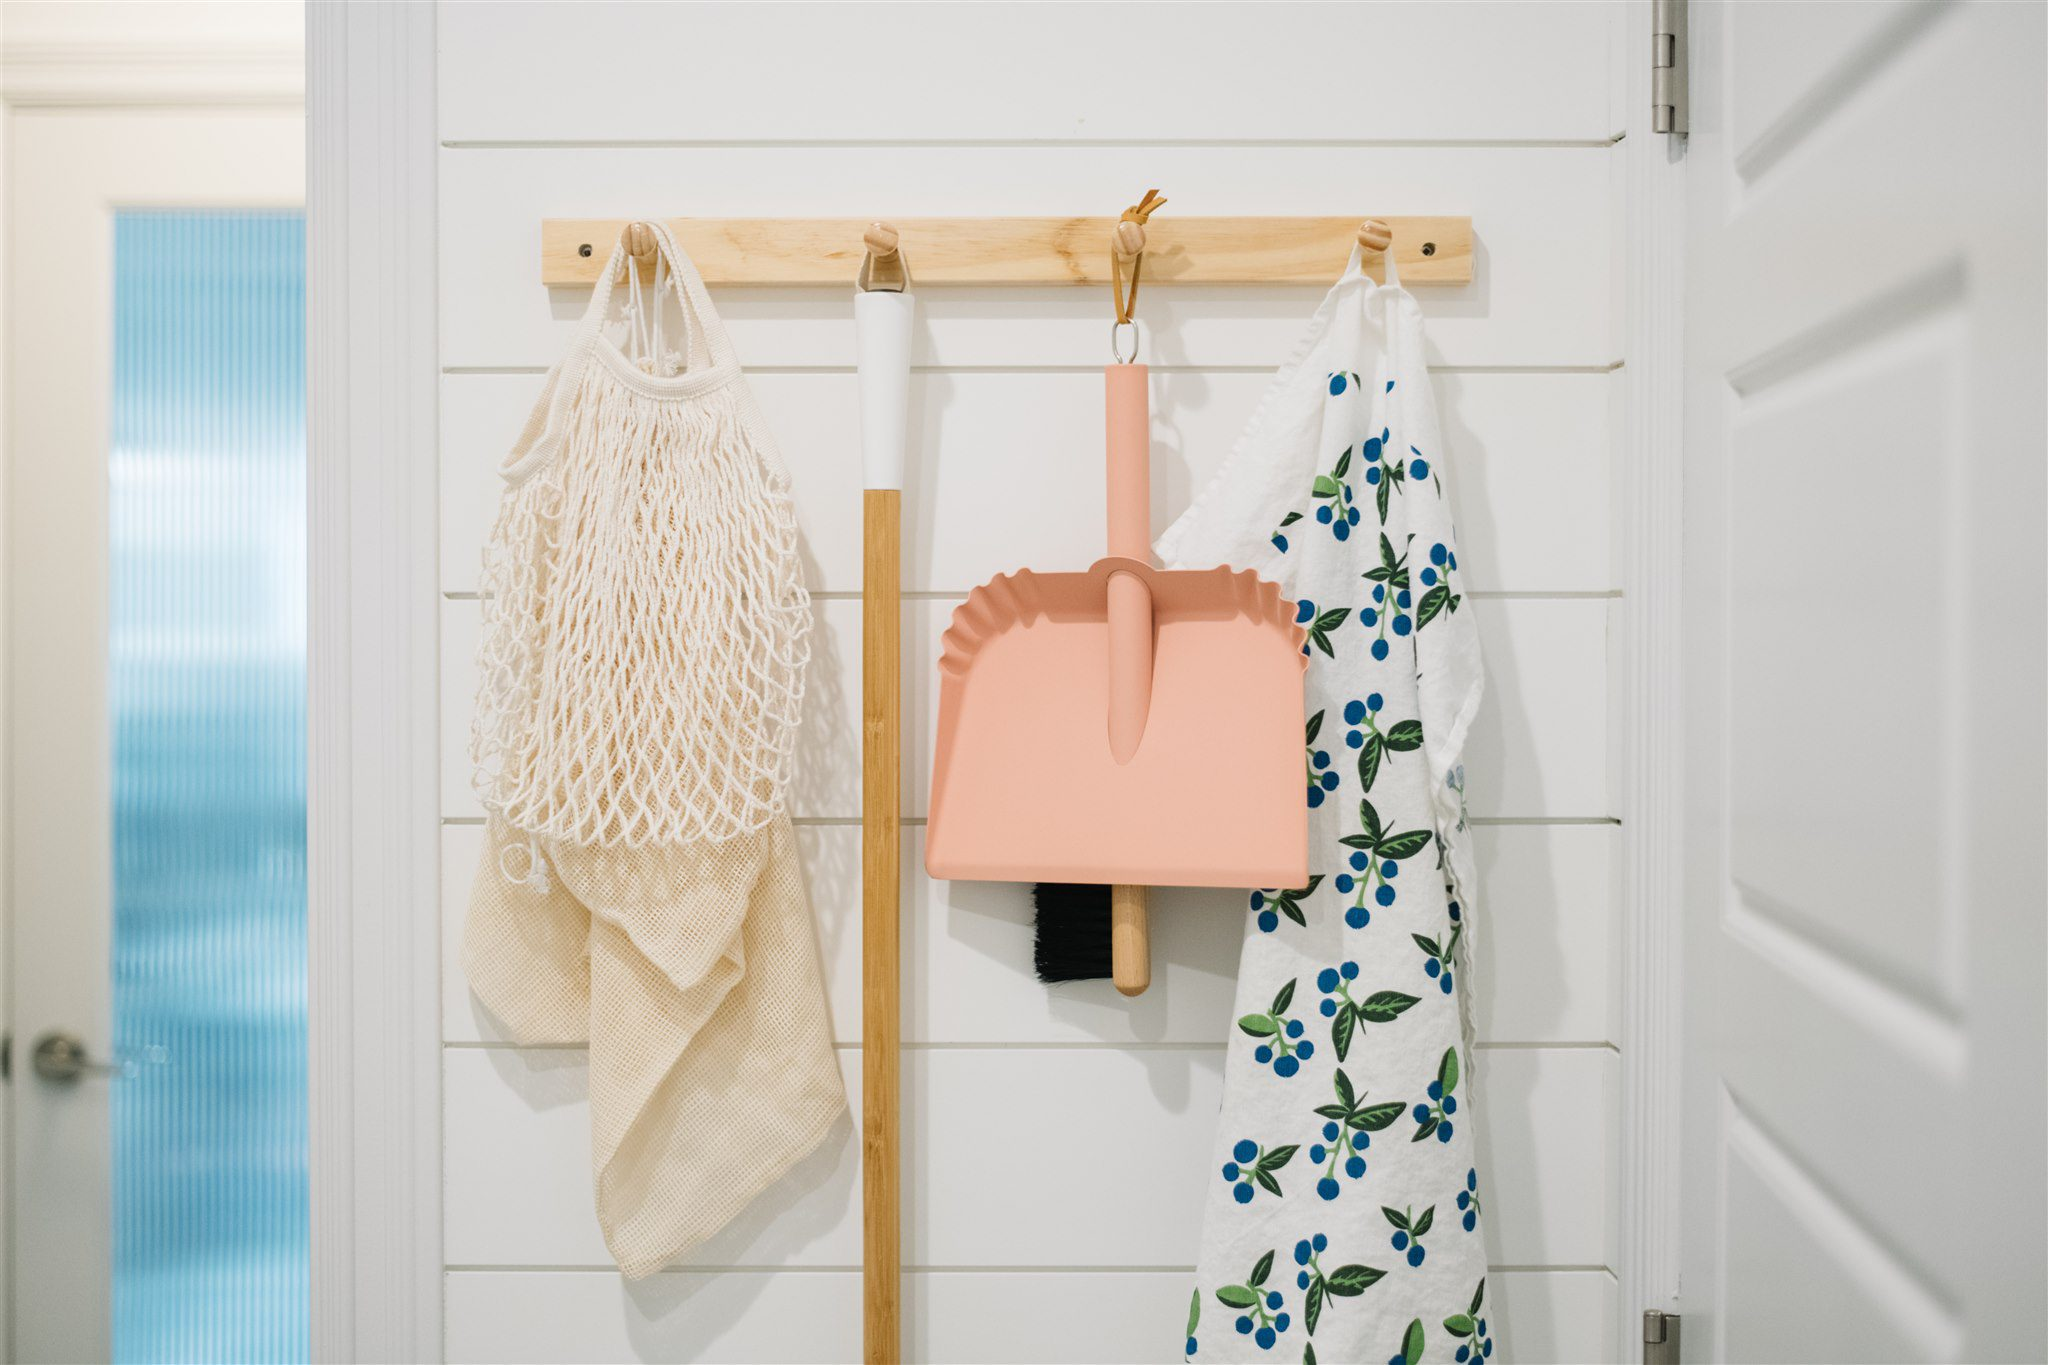 peg rail with dustpan, tea towel and market bags hung on it